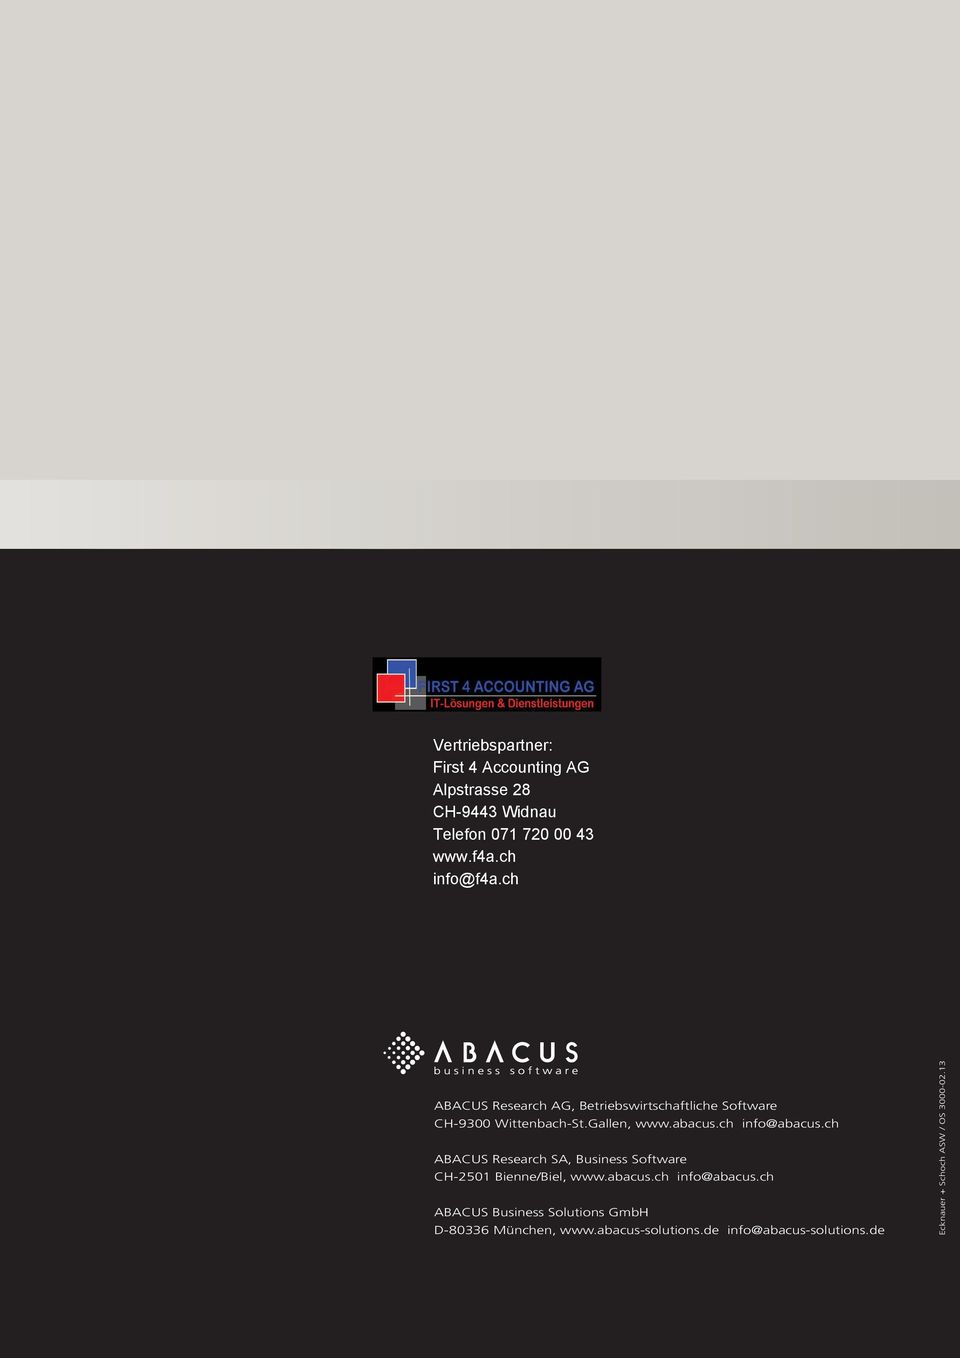 ch ABACUS Research SA, Business Software CH-2501 Bienne/Biel, www.abacus.ch info@abacus.